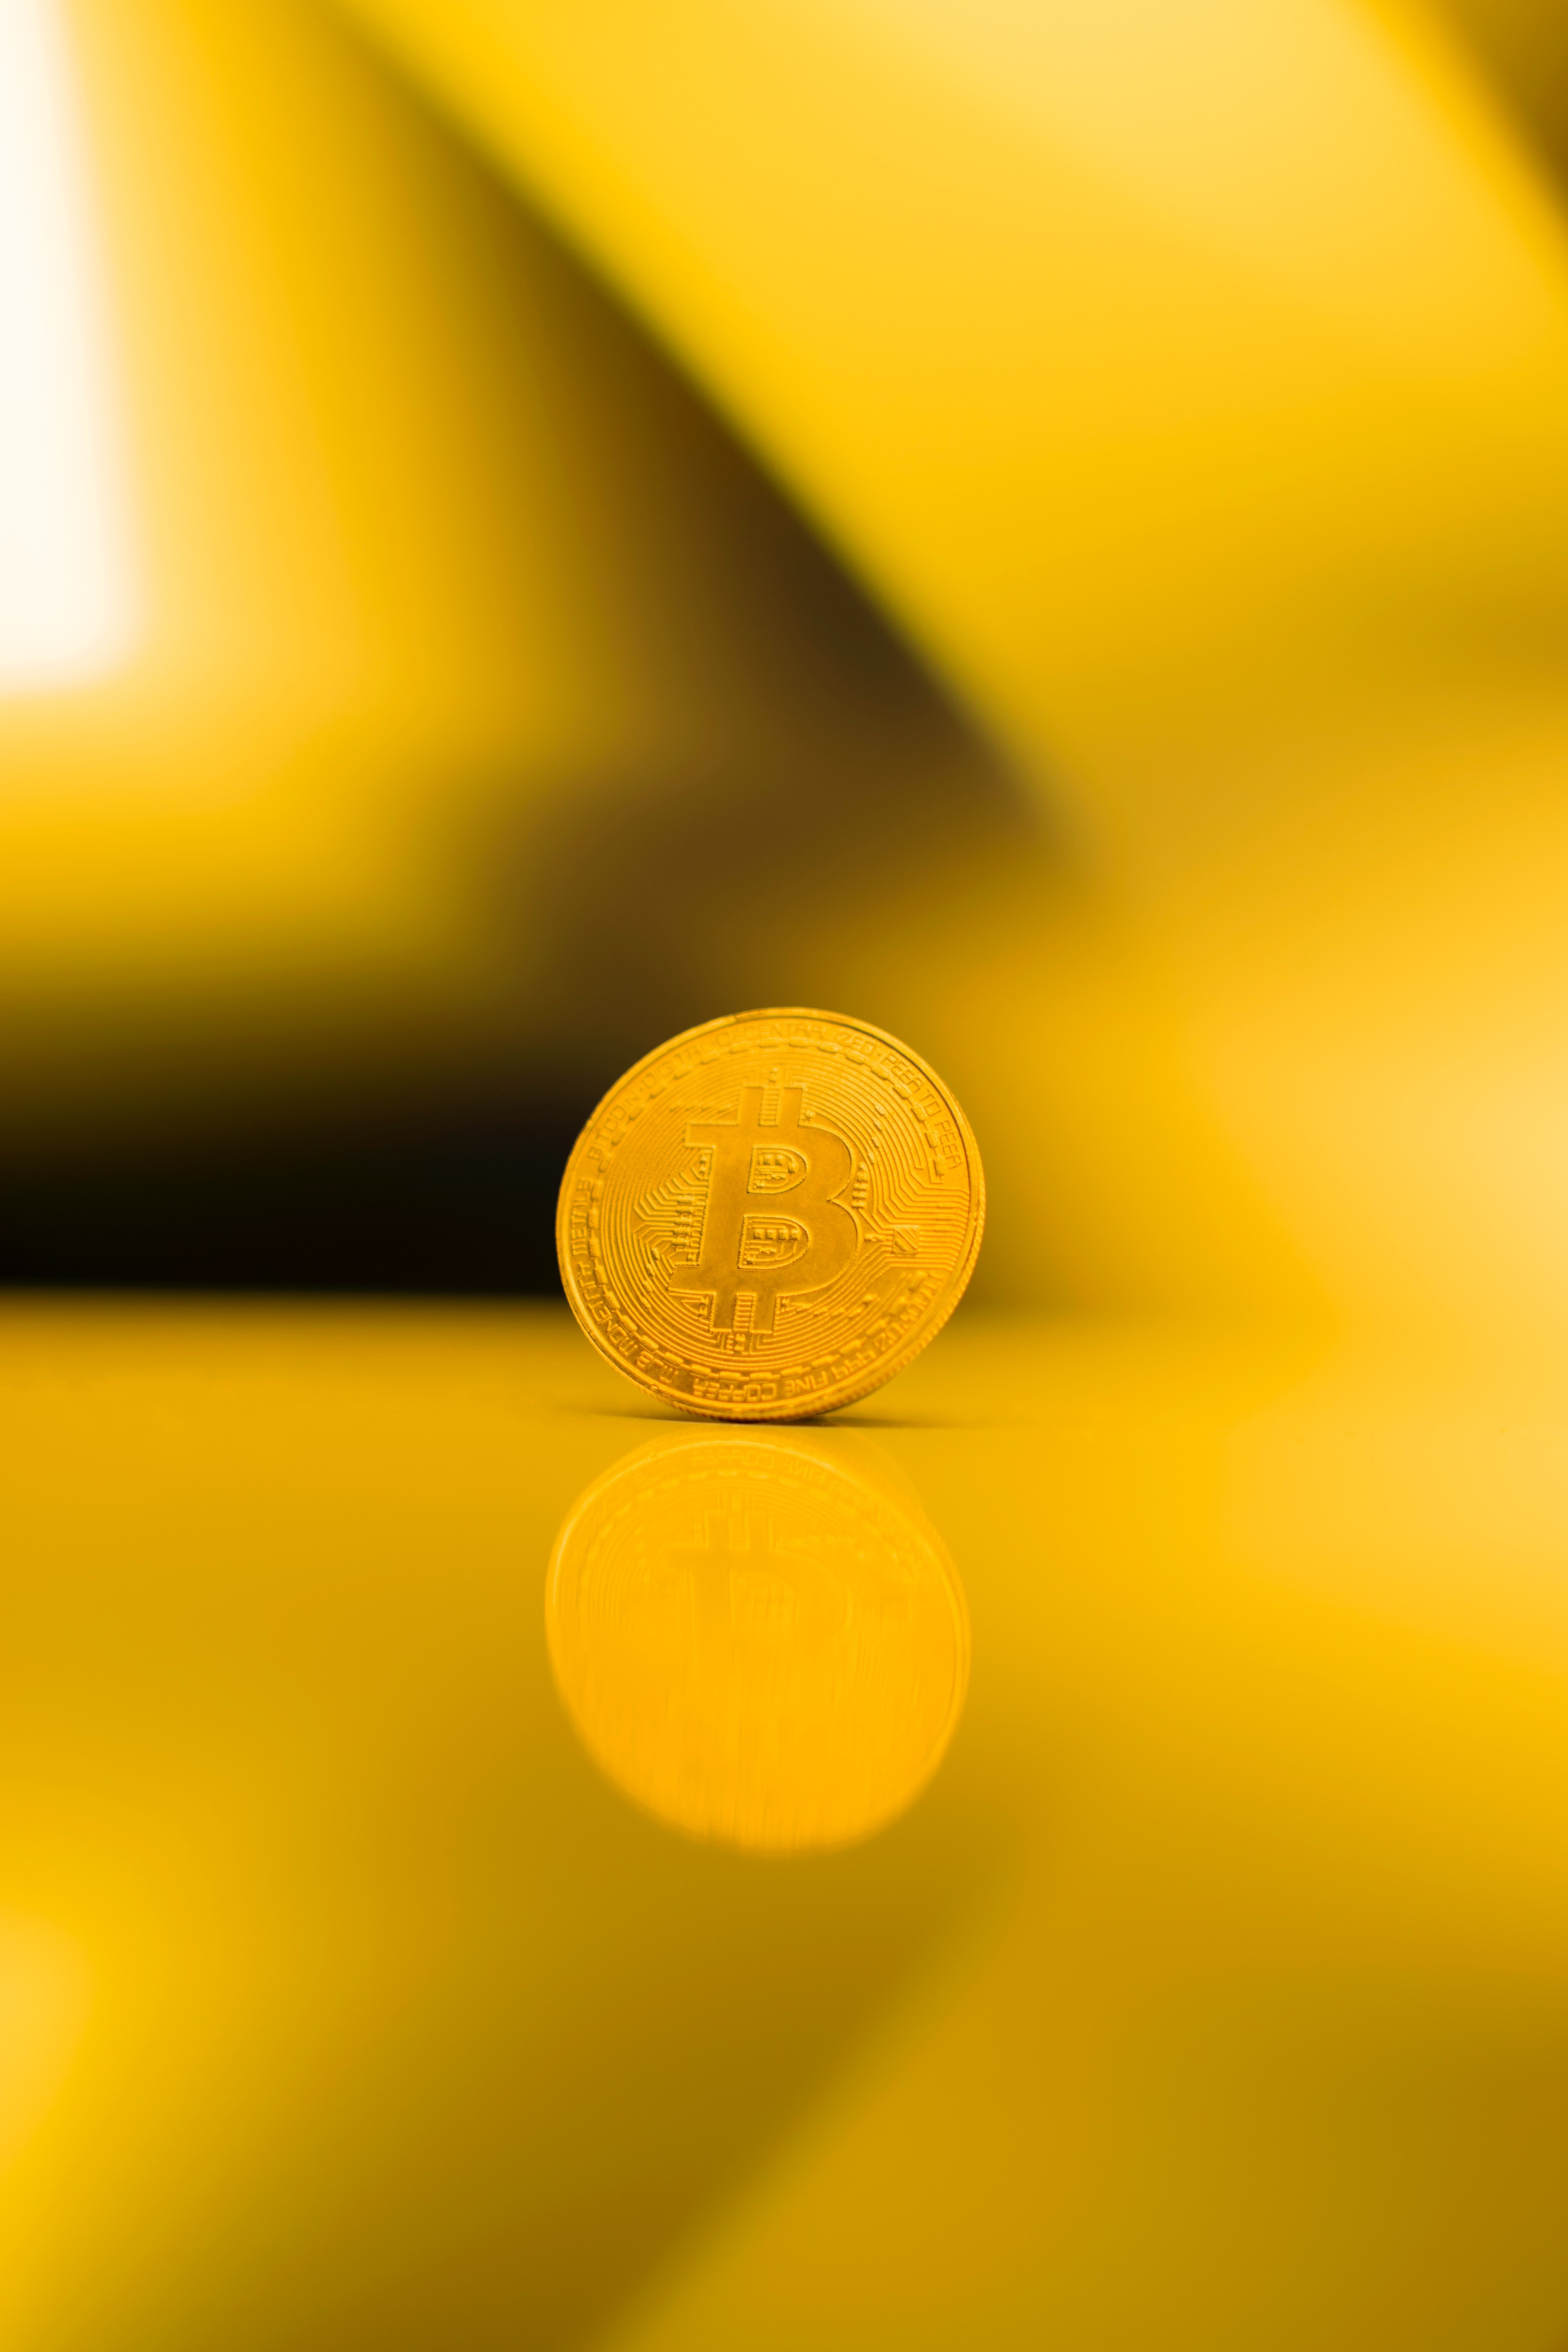 Experts expect bitcoin to soar to $100,000 in 2022